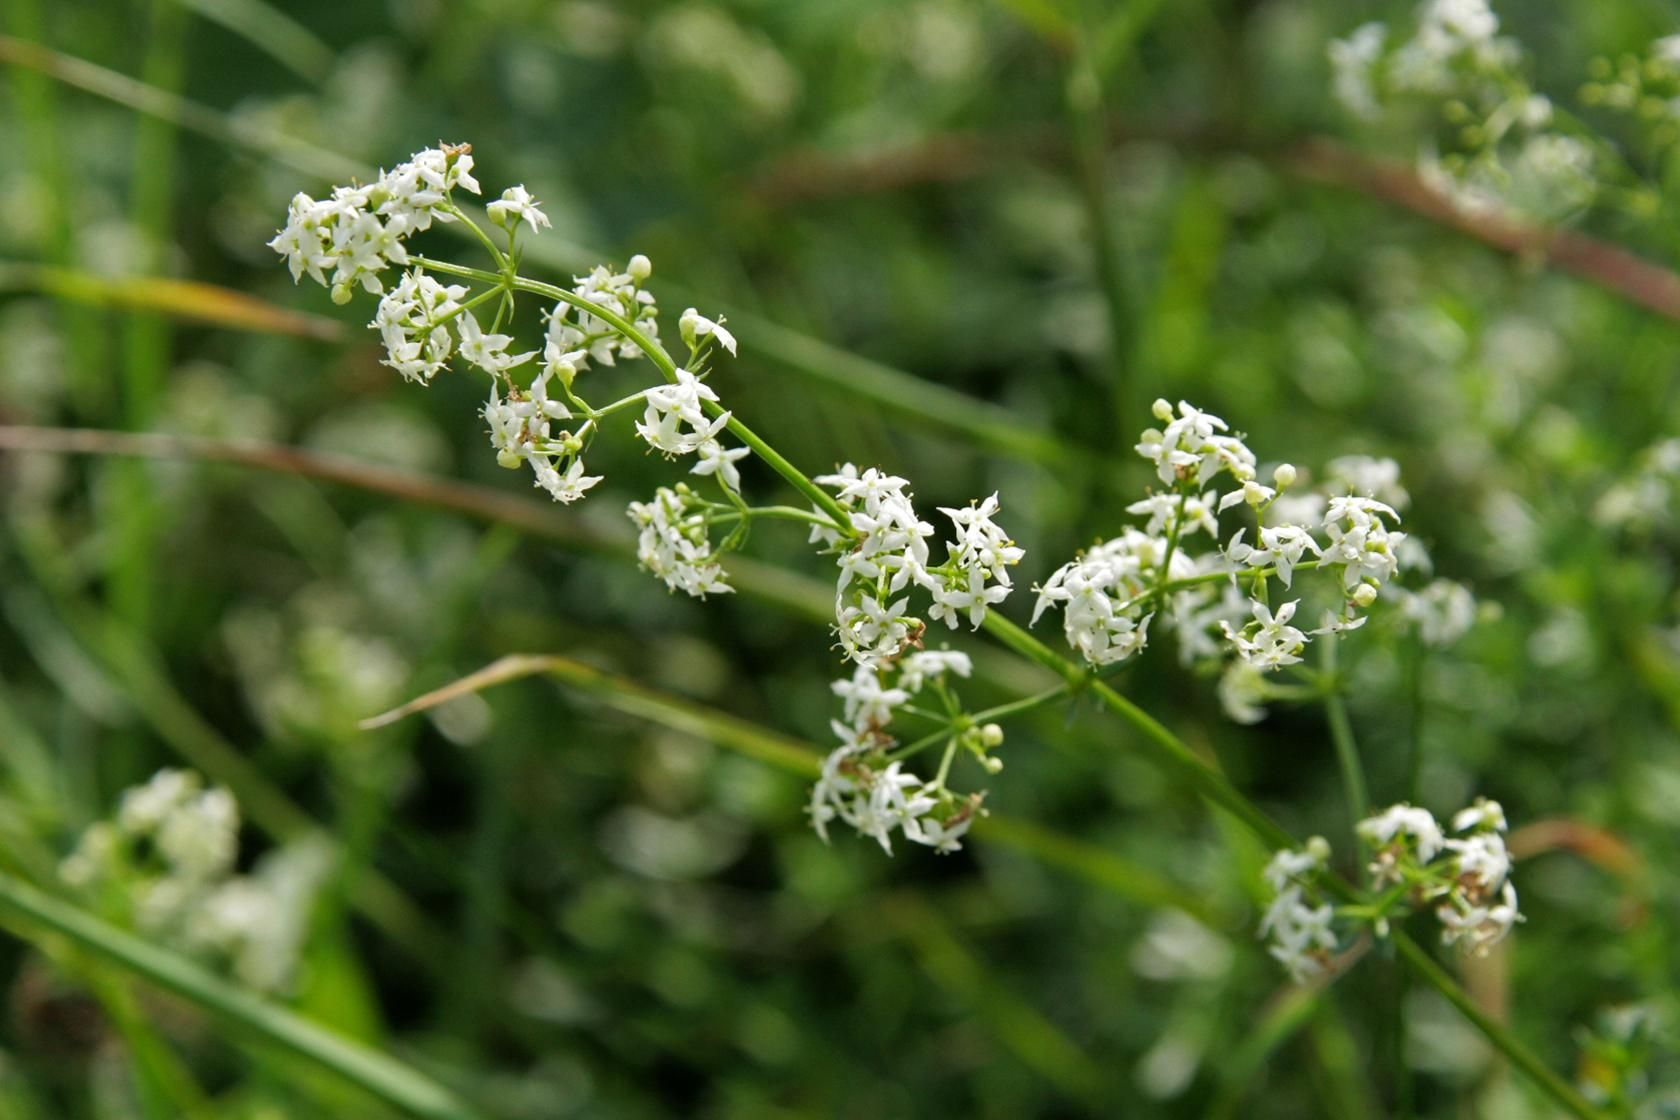 Hedge Bedstraw Galium Album Perennial The Tiny White Flowers